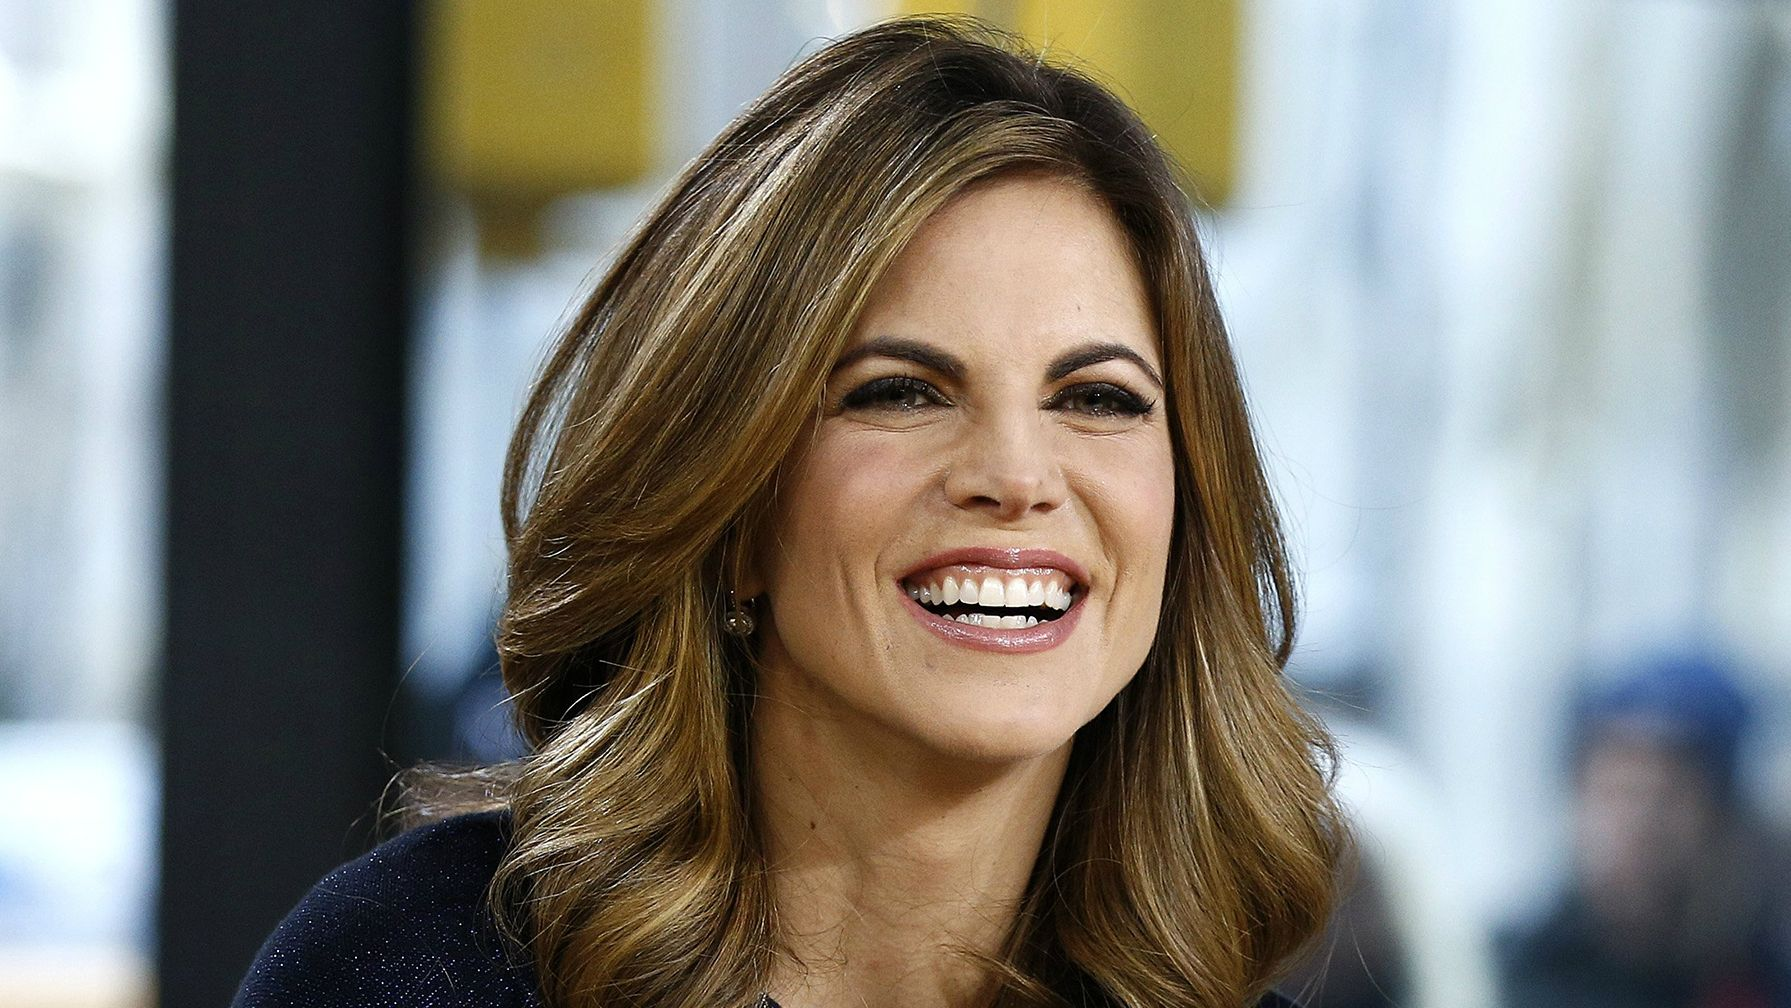 natalie morales: i'm running boston in honor of the bombing